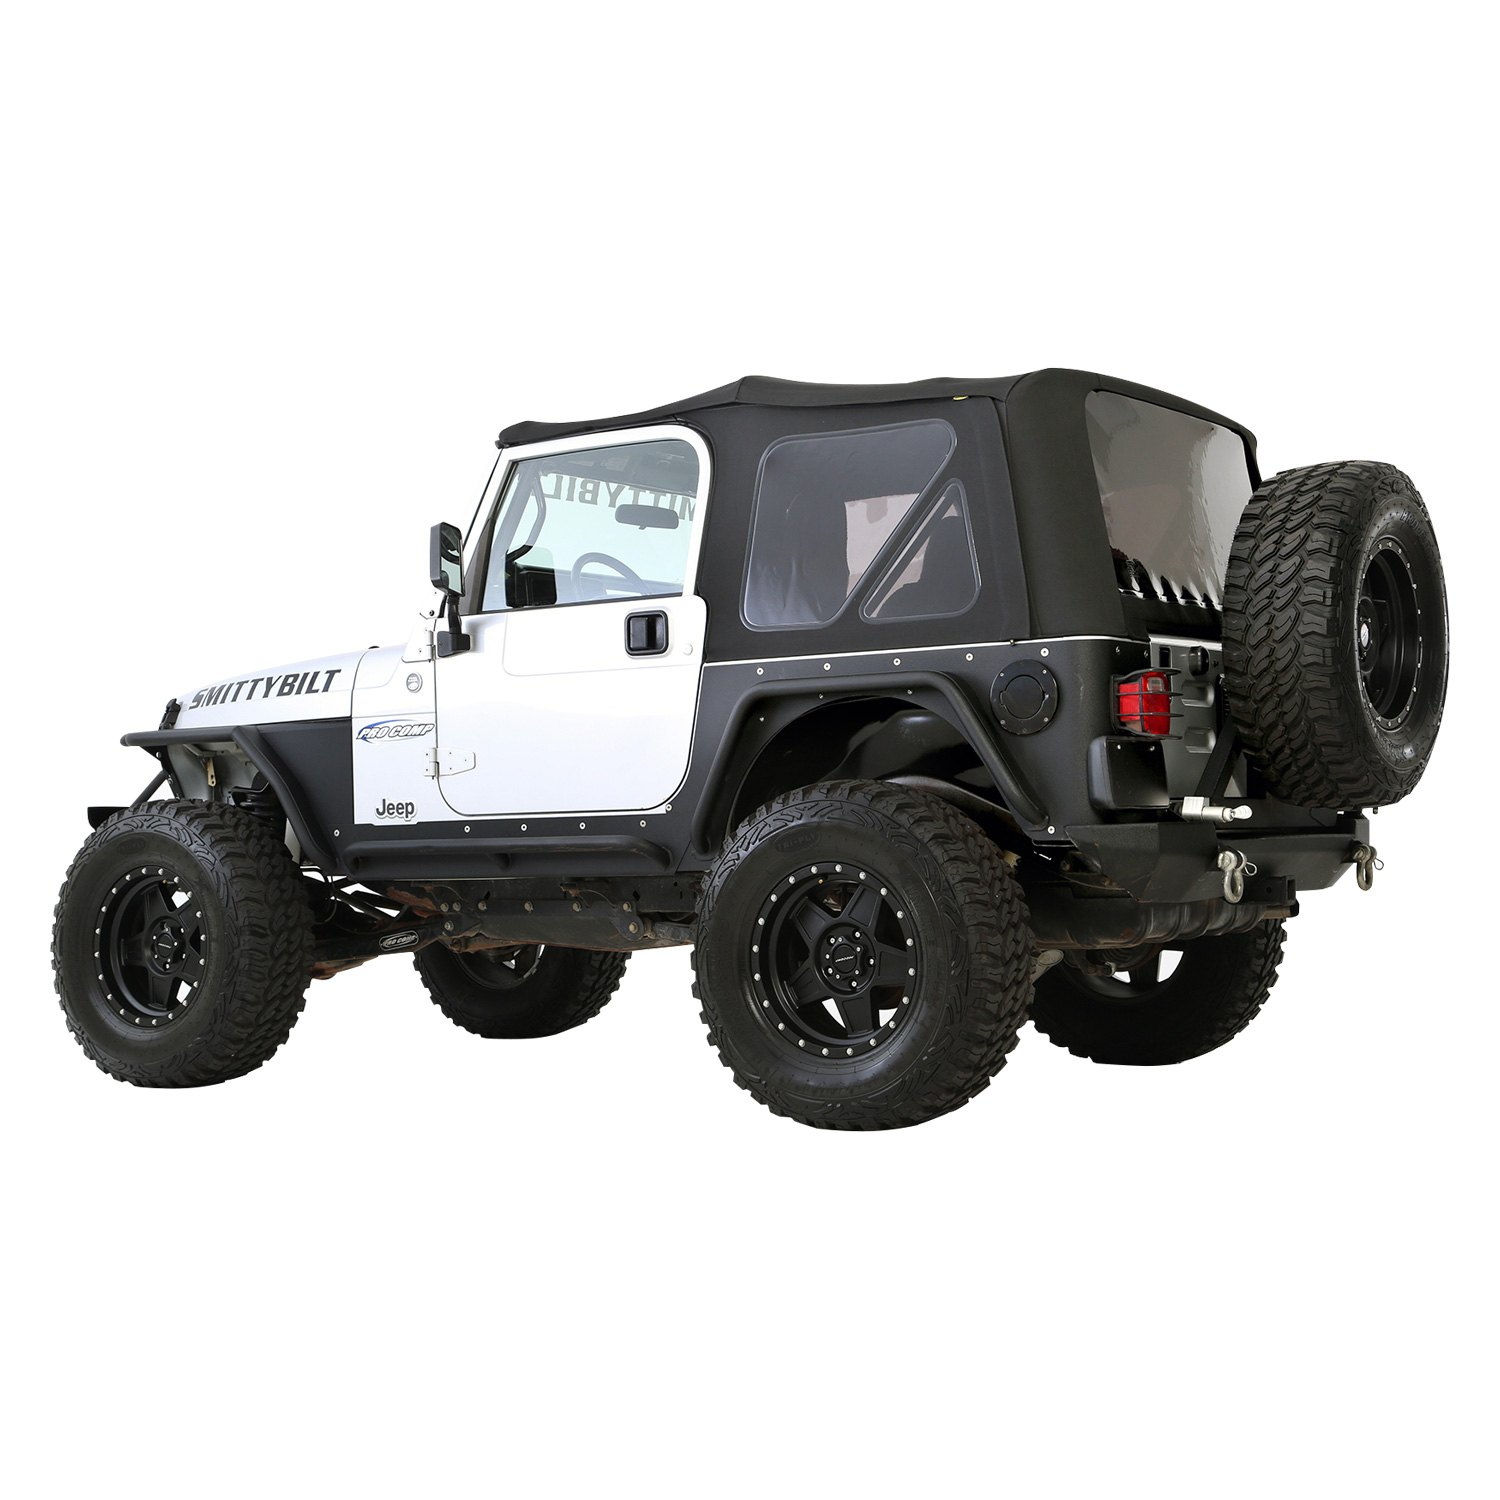 Jeep Wrangler Replacement Soft Top >> Smittybilt® - Jeep Wrangler 2010 Premium OEM Replacement Canvas Soft Top with Tinted Windows